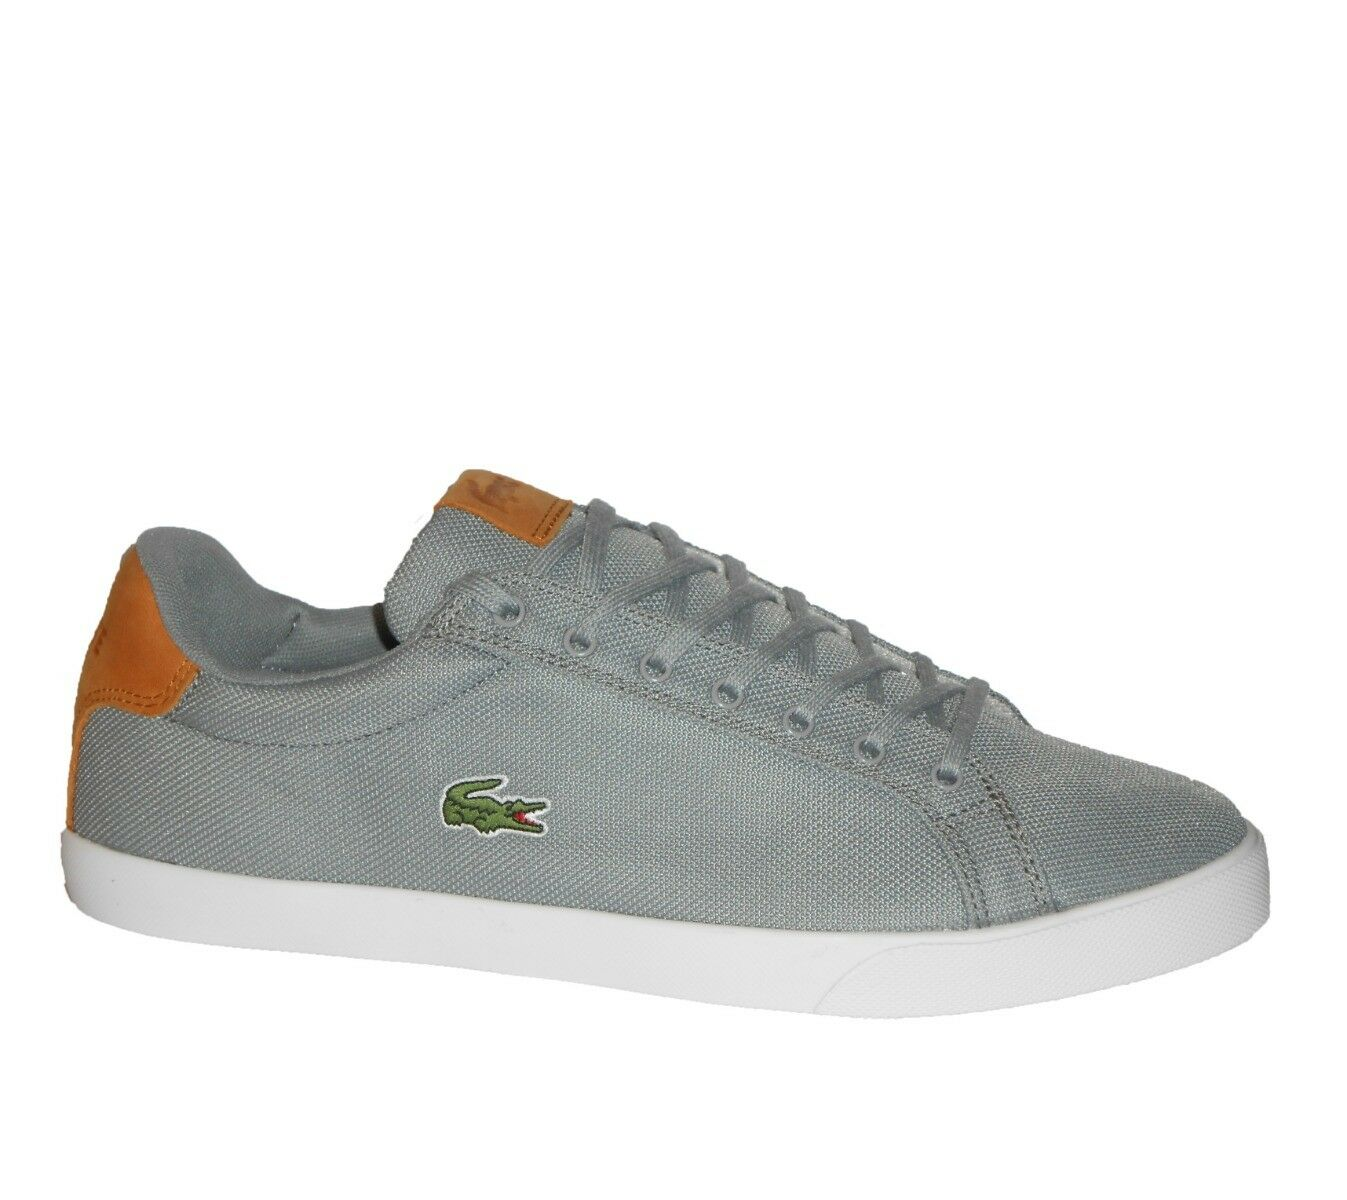 Lacoste GRAD VULC S316 3 SPM Homme TRAINER Chaussures Taille 7 - 9.5 Gris    80/-